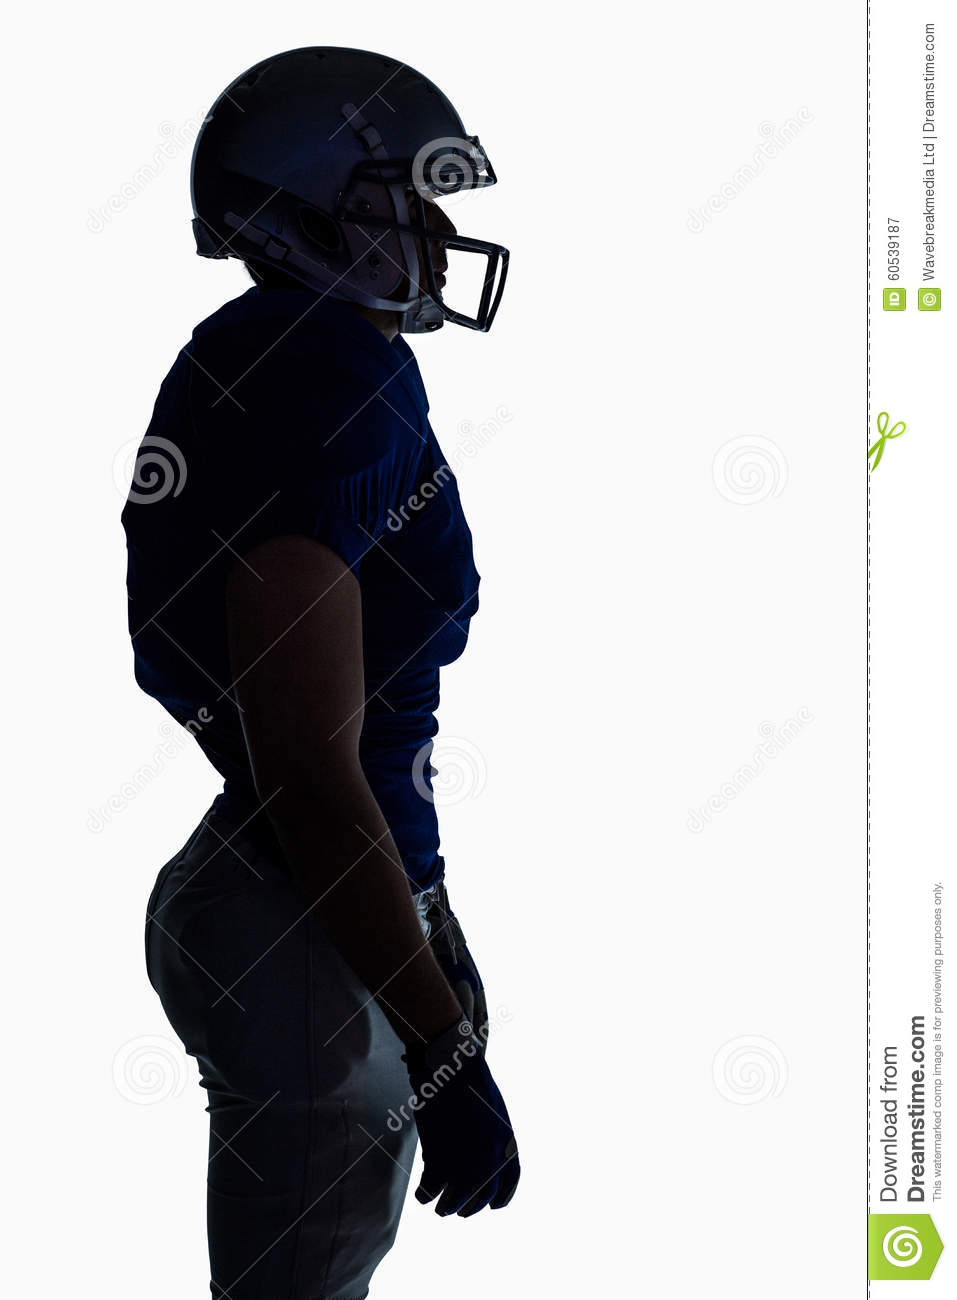 side view of silhouette american football player standing